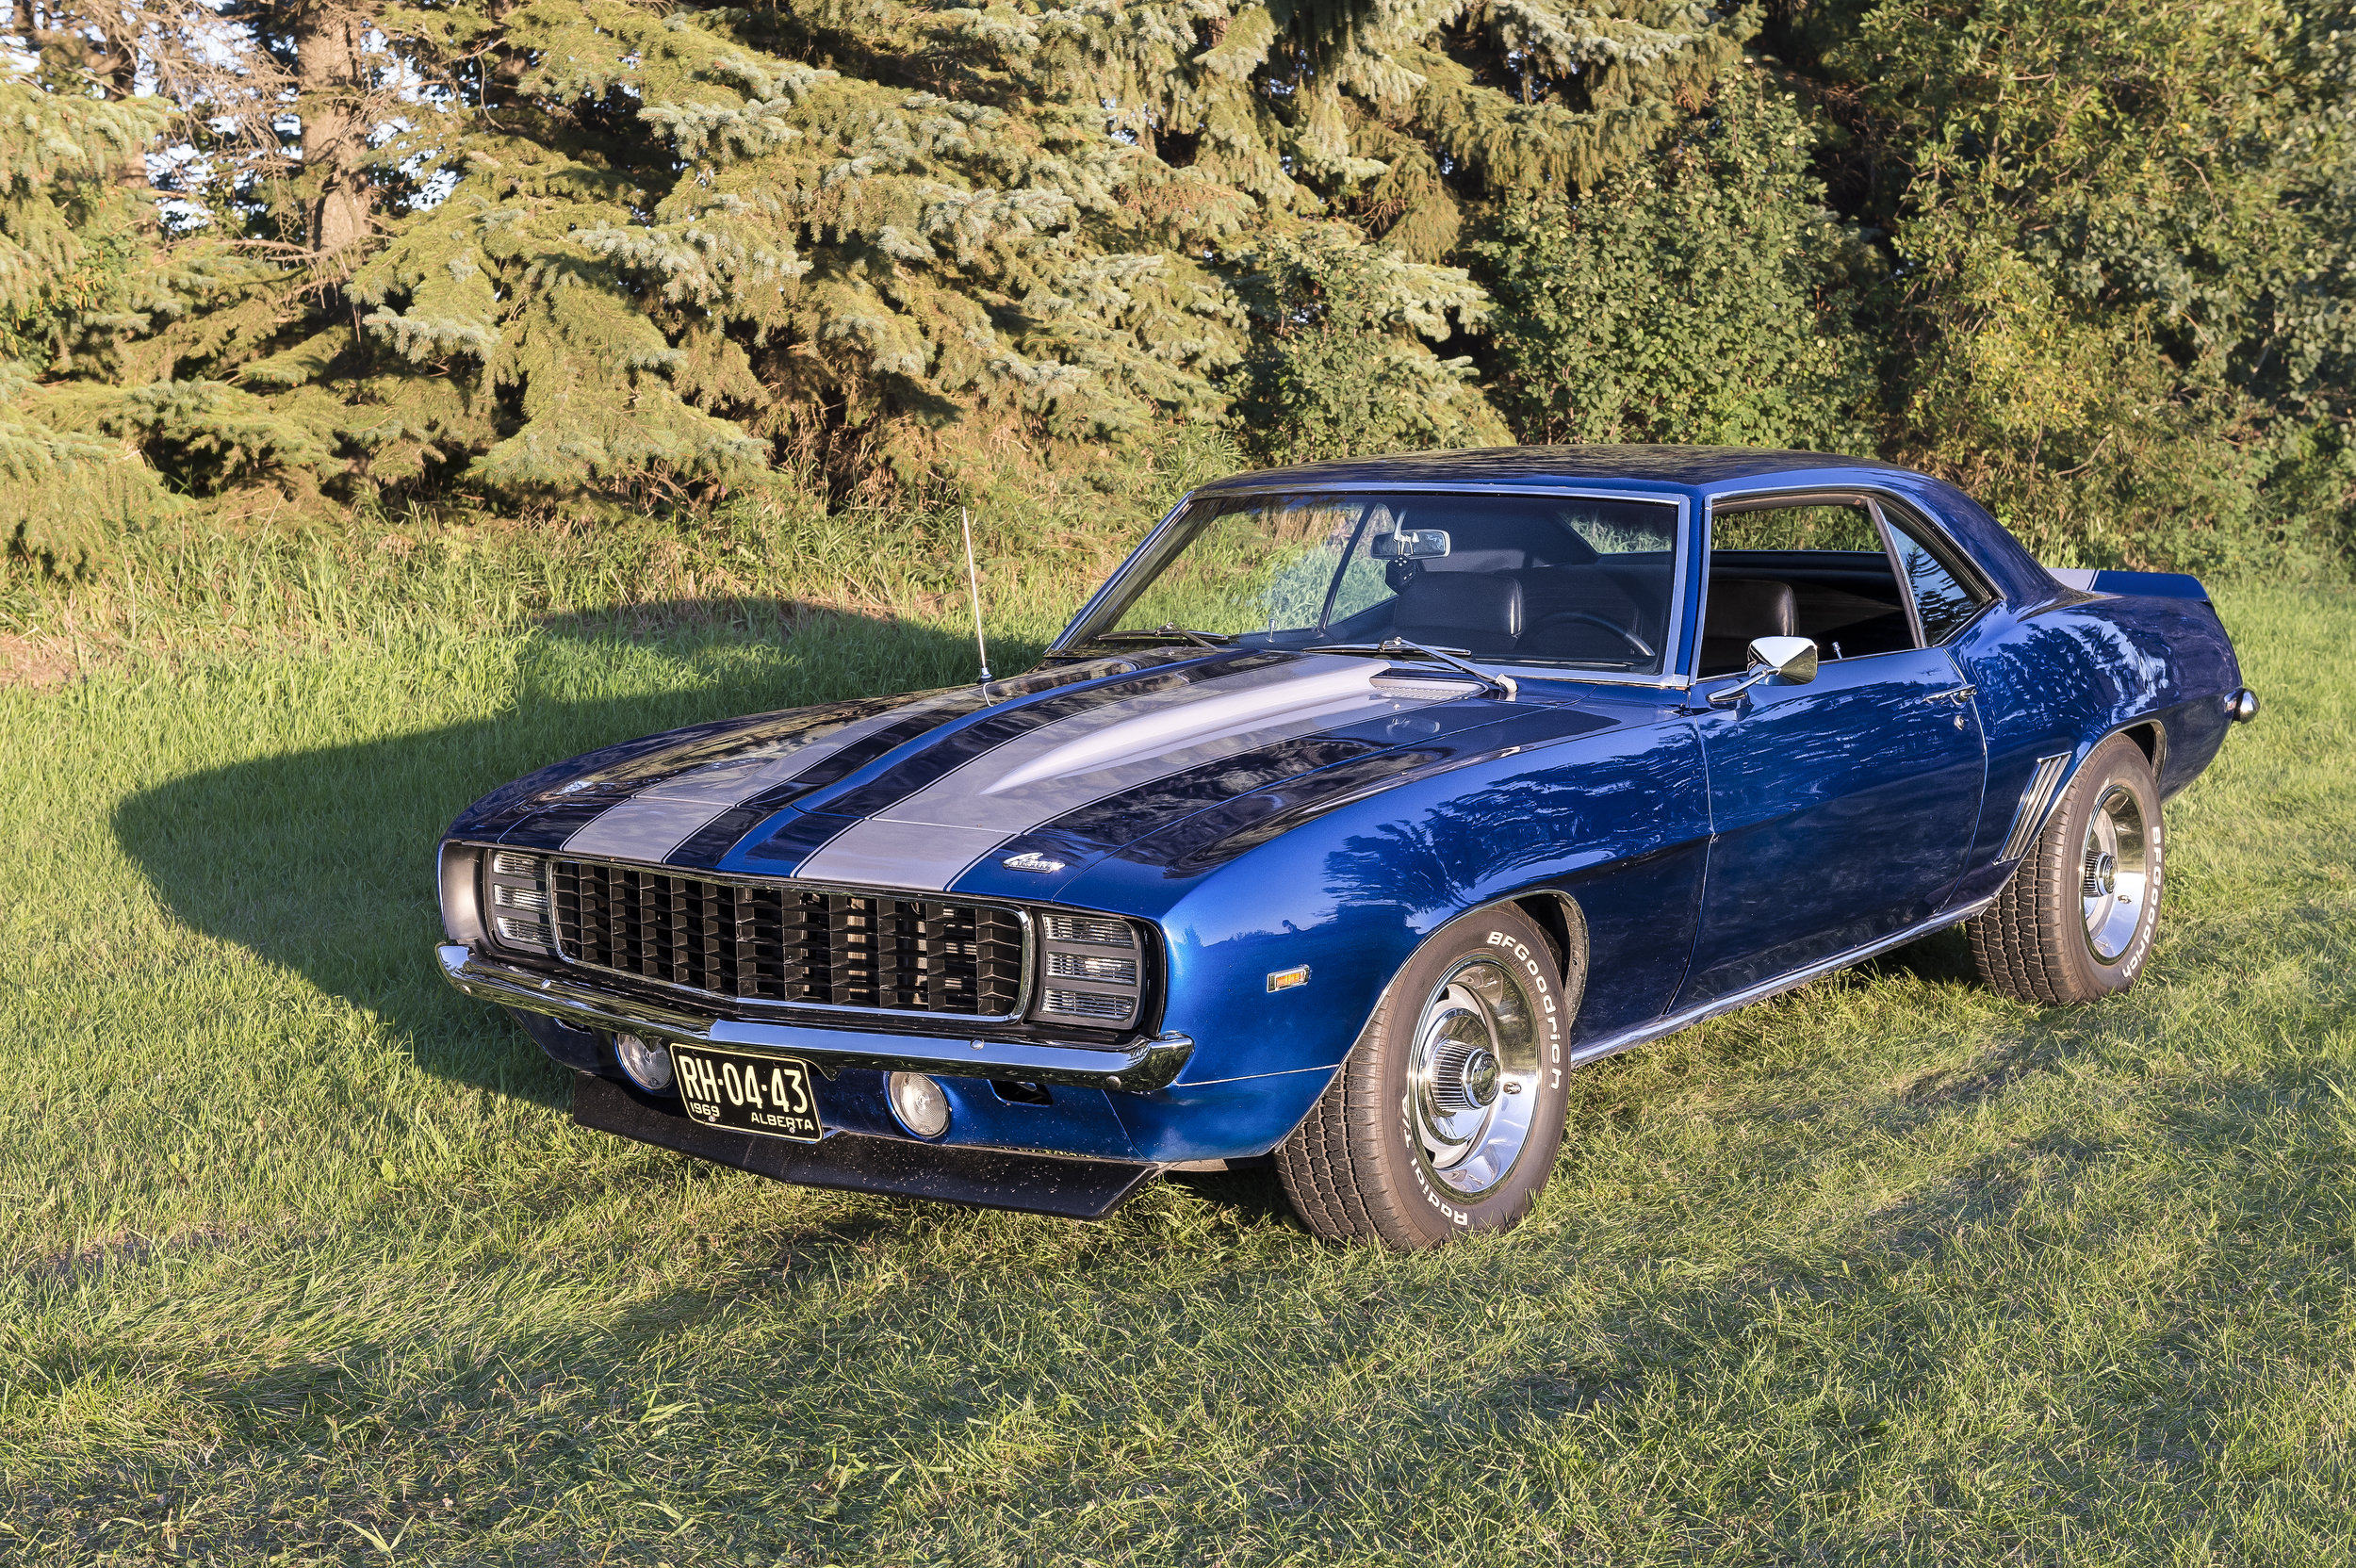 1969 Camaro RS  383 stroker, 700 r4, 10 bolt posi 383 gears, willwood brakes, all original sheet metal car from Texas.